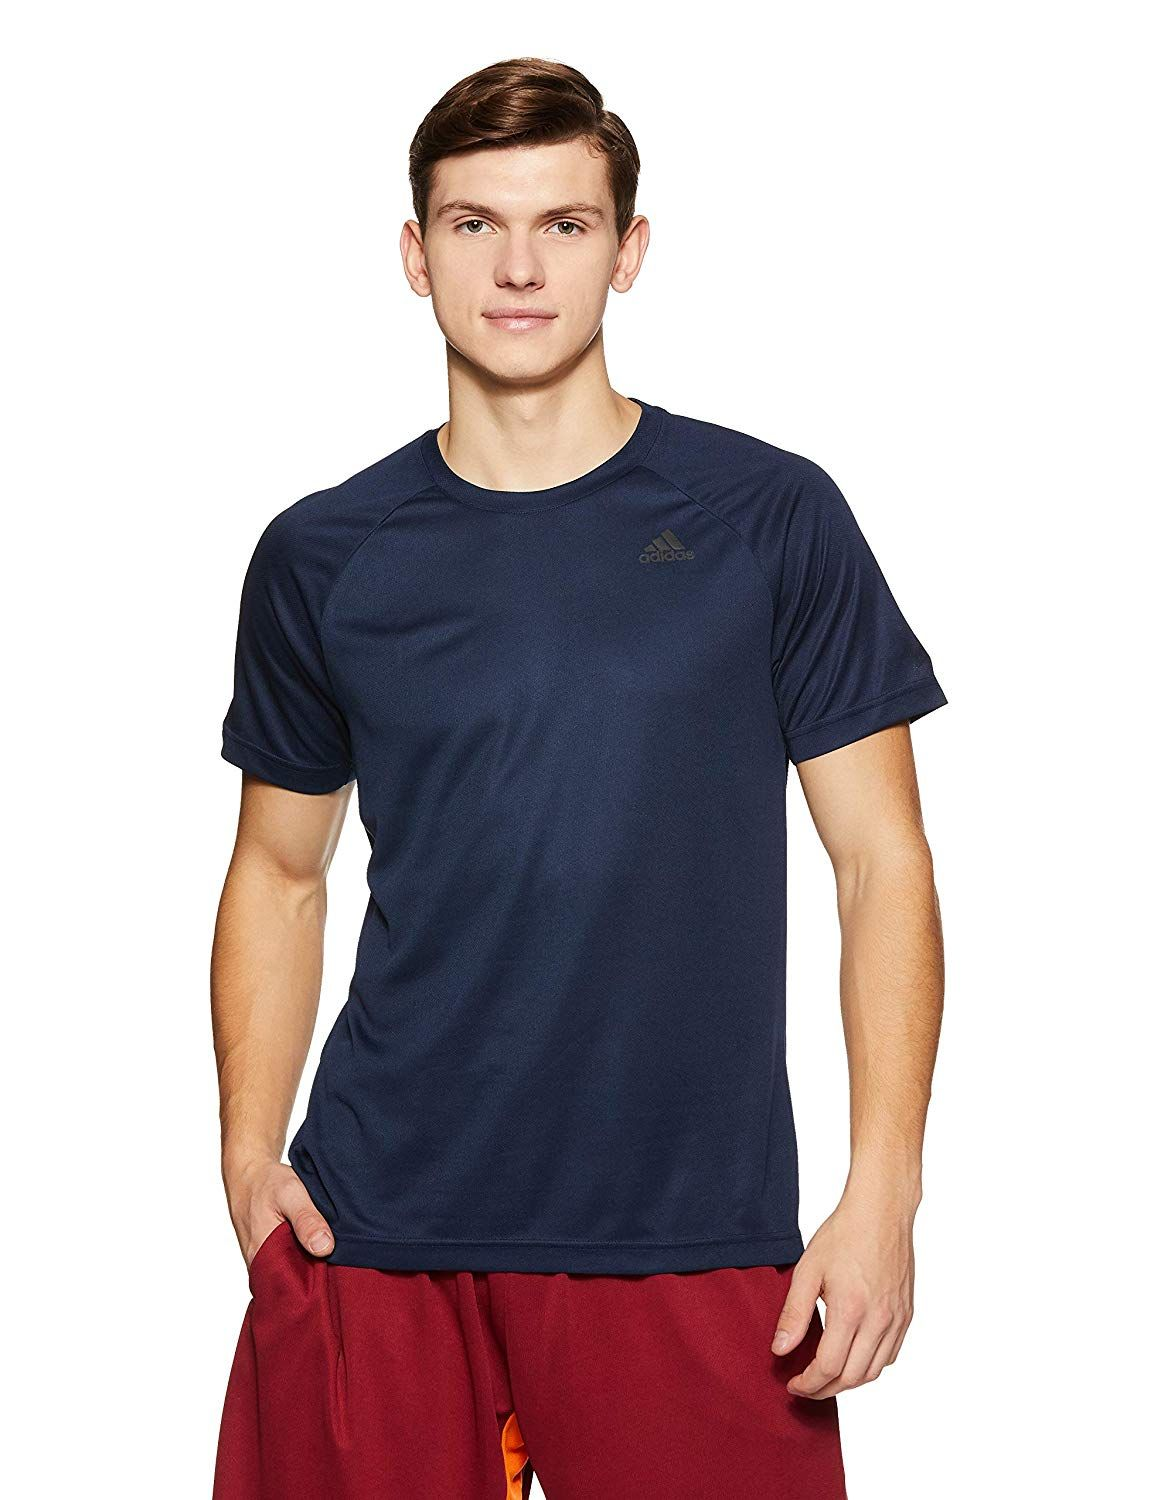 3052854be69f6 Adidas Men's Plain Regular Fit T-Shirt: Amazon.in: Clothing & Accessories